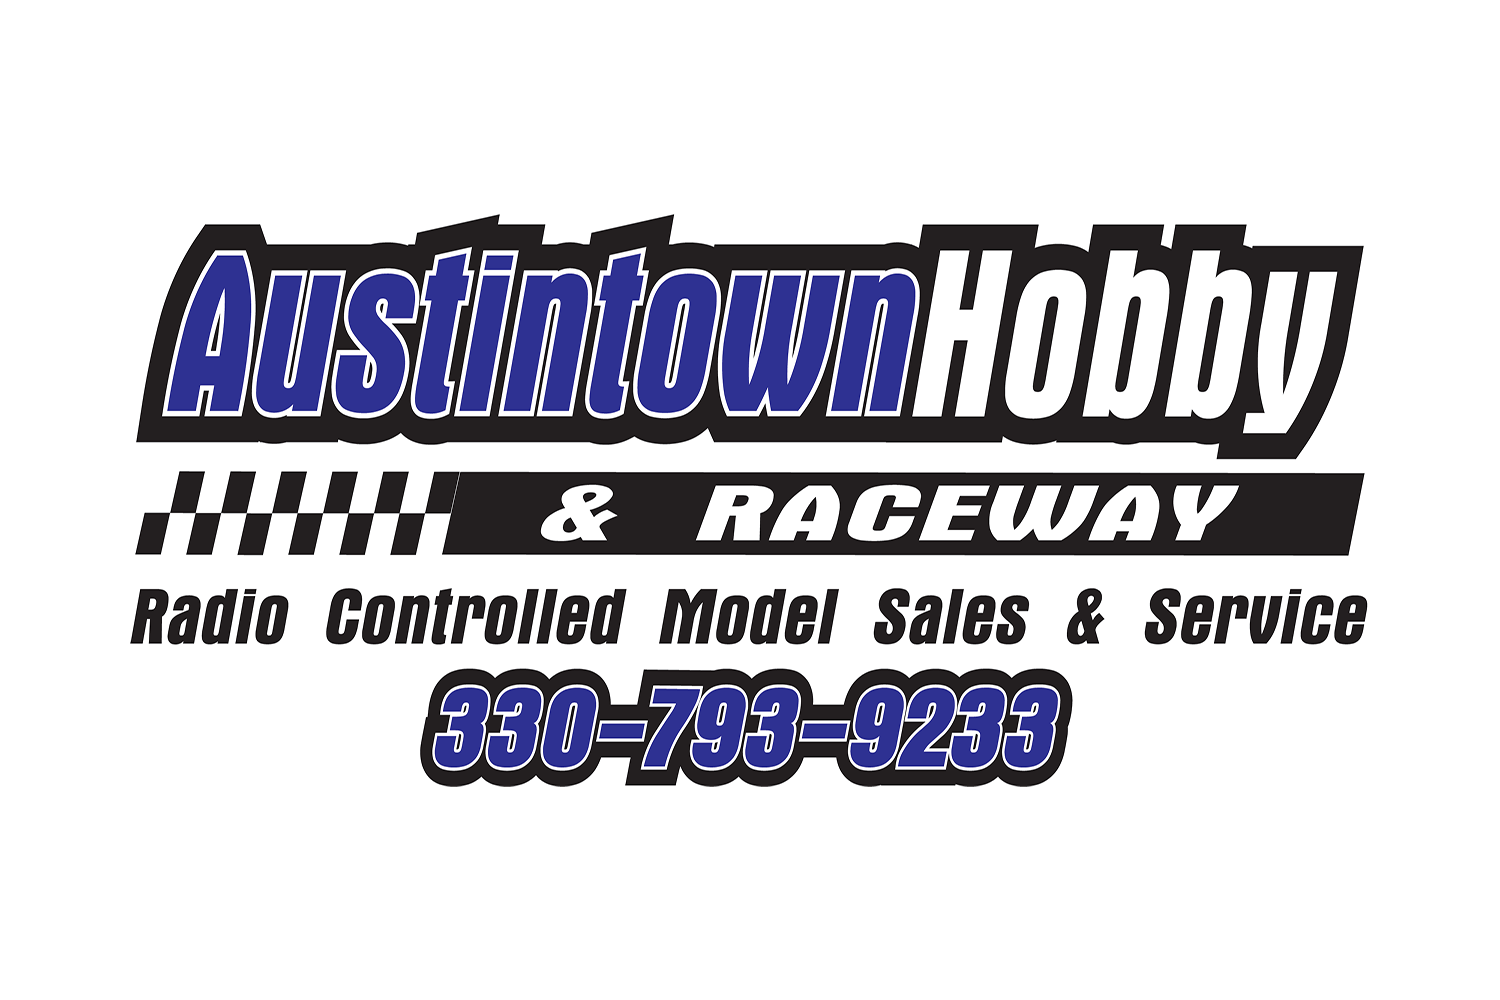 The official logo of Austintown Hobby and Raceway of Austintown, Ohio.